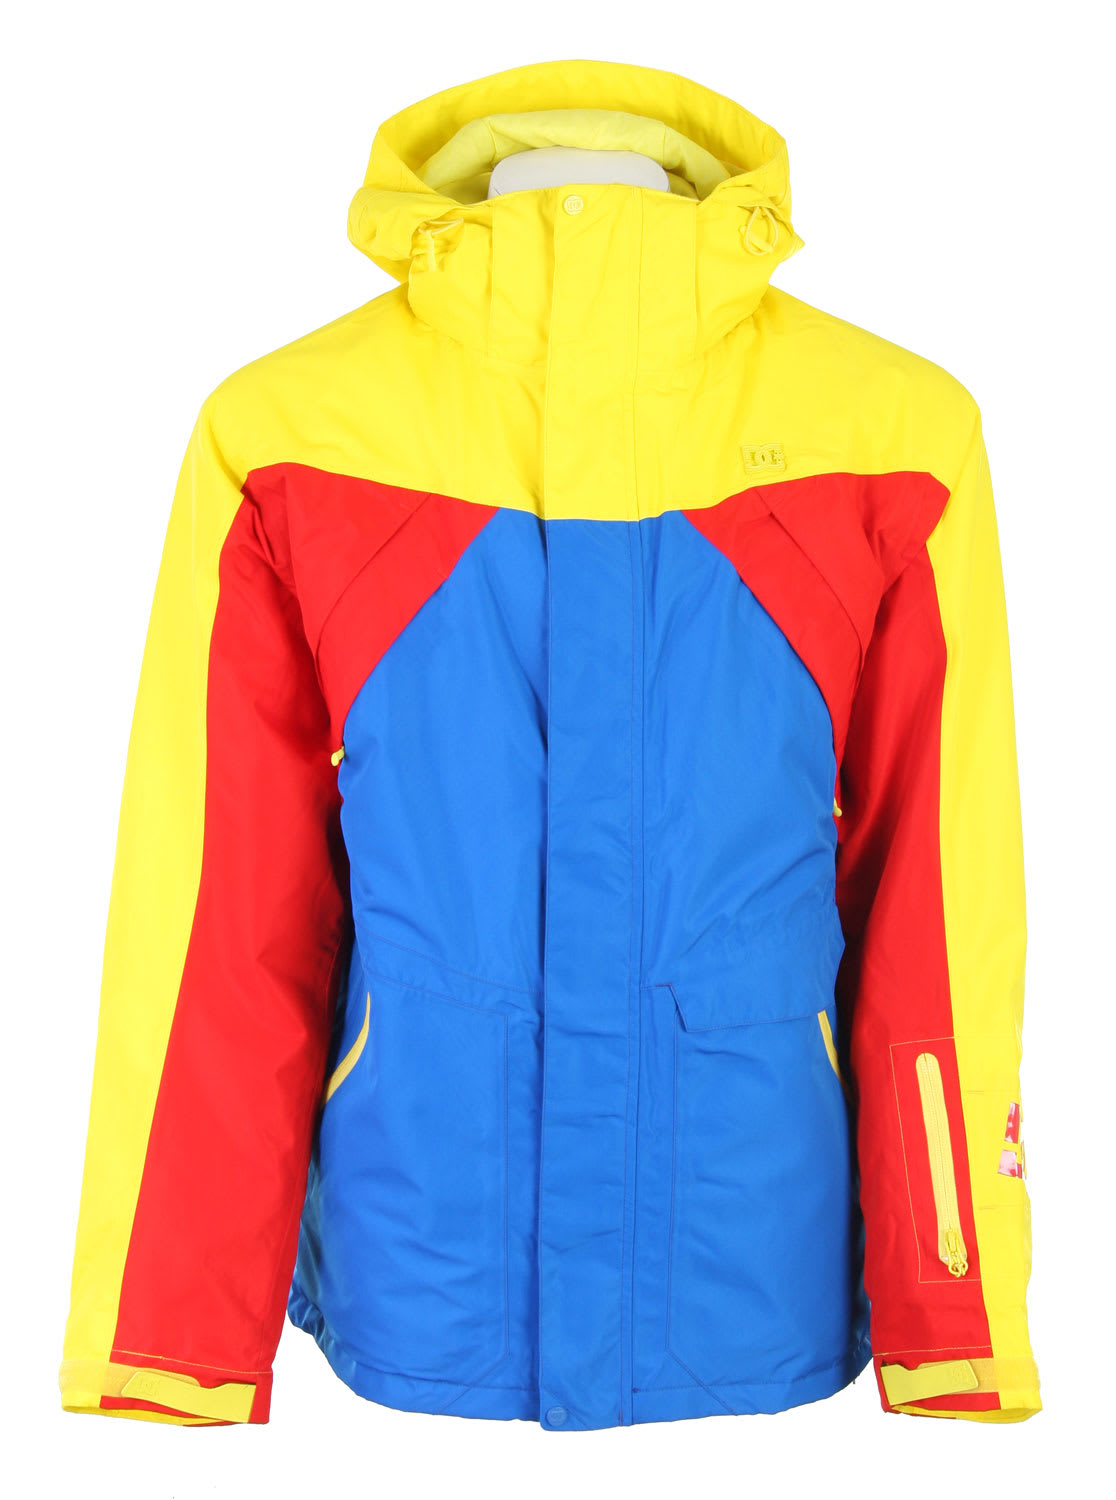 Shop for DC Helix Snowboard Jacket Lapis - Men's